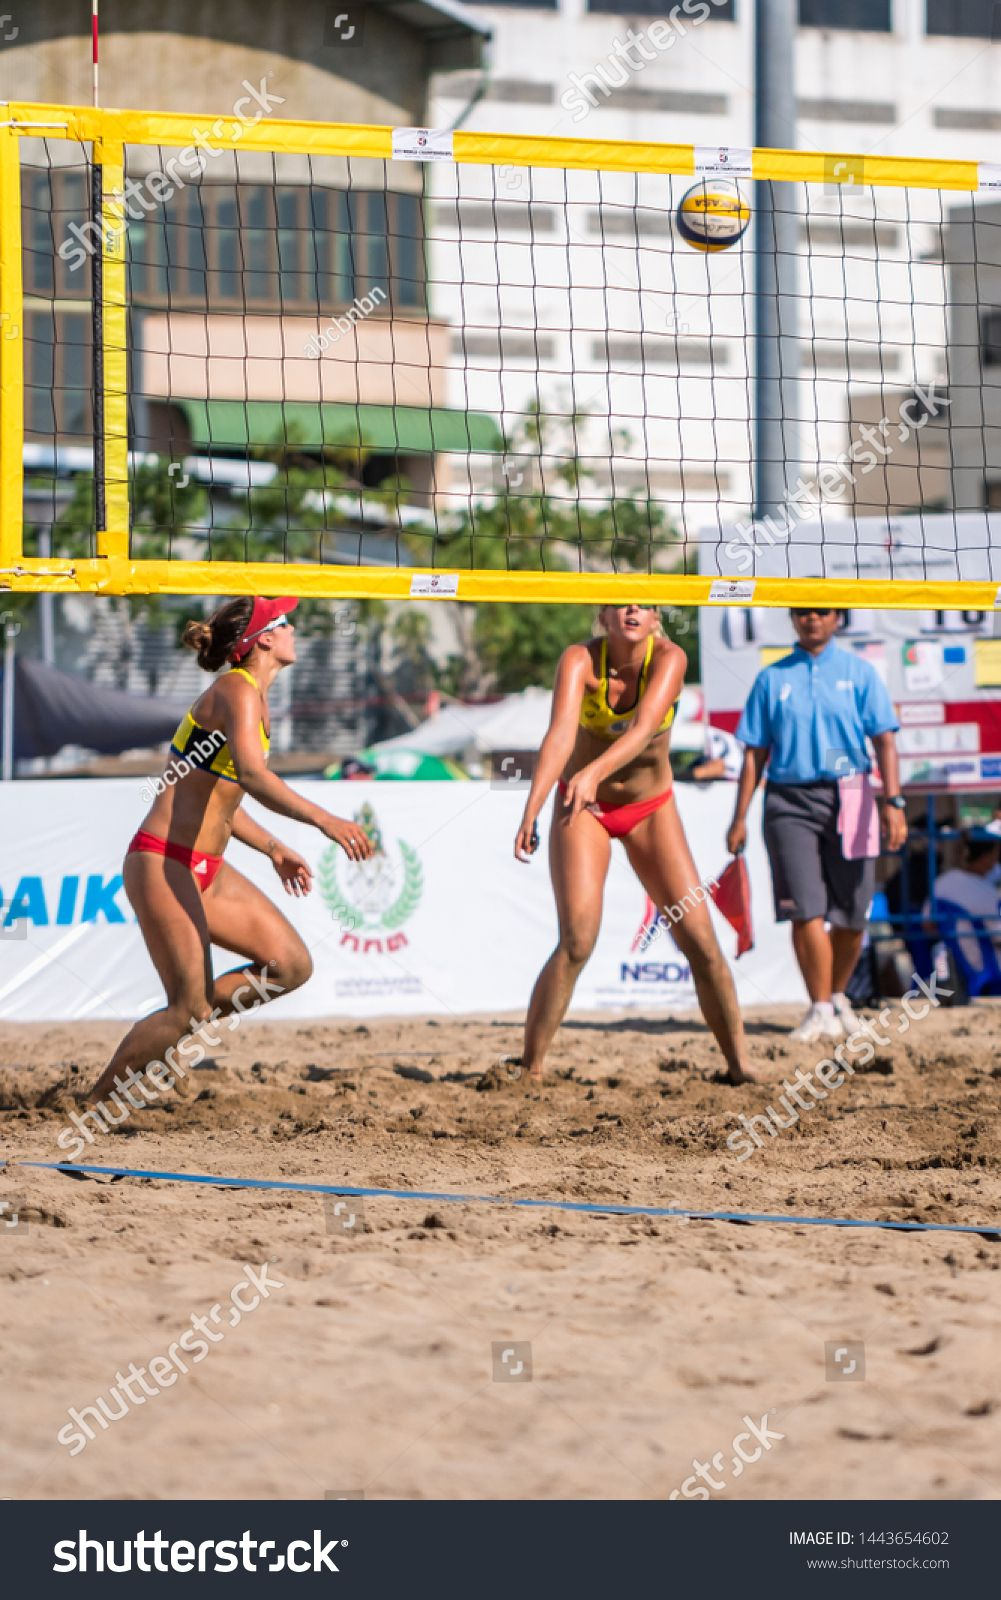 Udonthani Thailand June 21 2019 Beach Volleyball Players In Action Of U21 World Championships On June 21 20 Beach Volleyball Volleyball Players Thailand